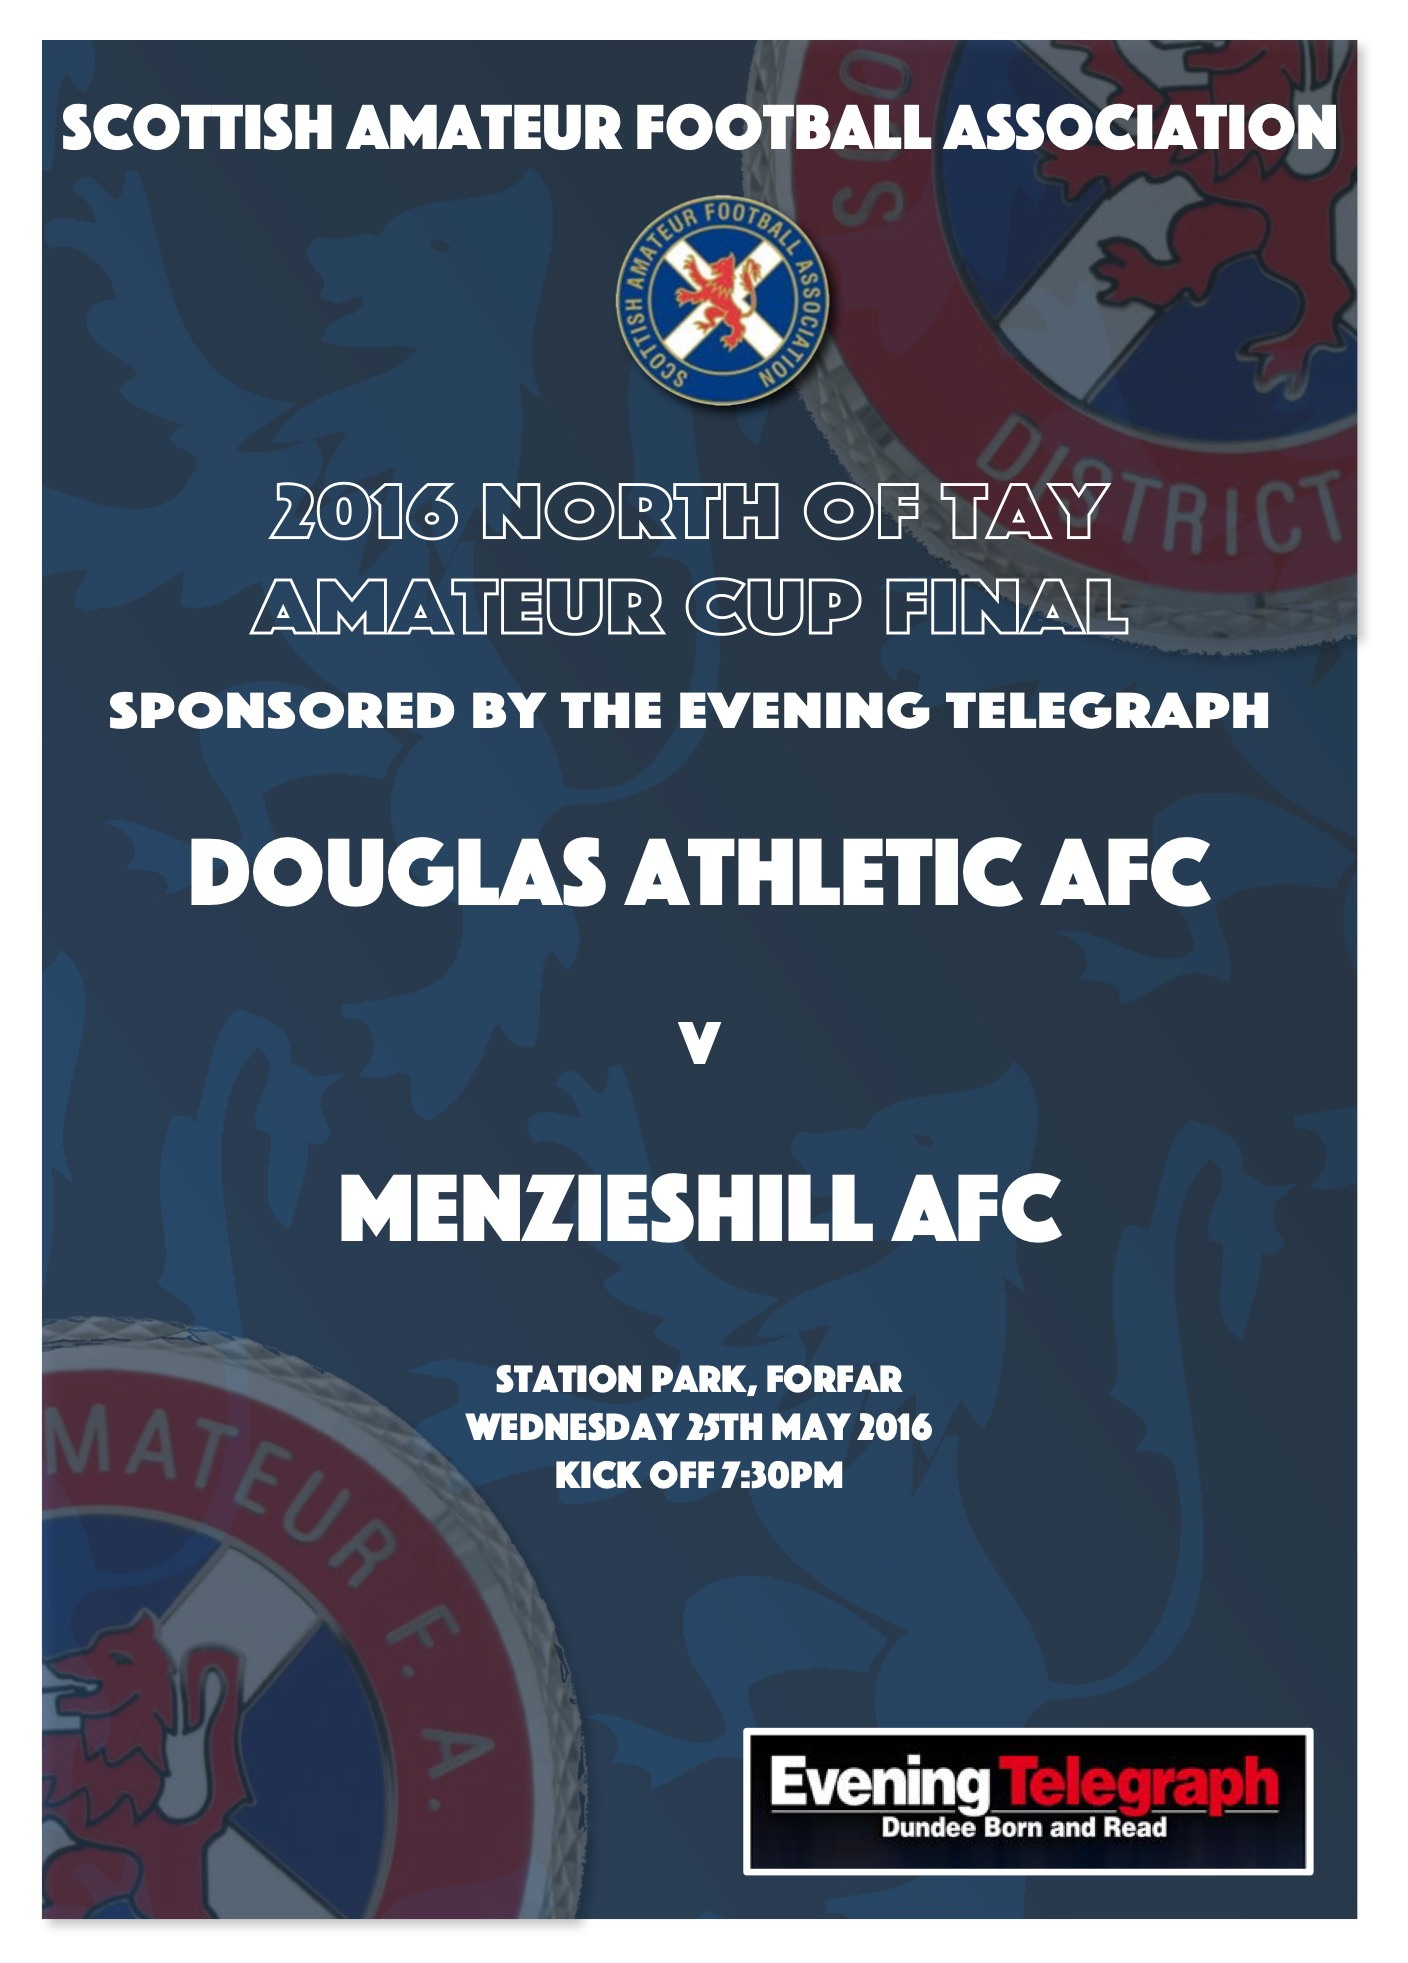 North of Tay Amateur Cup Final 2016